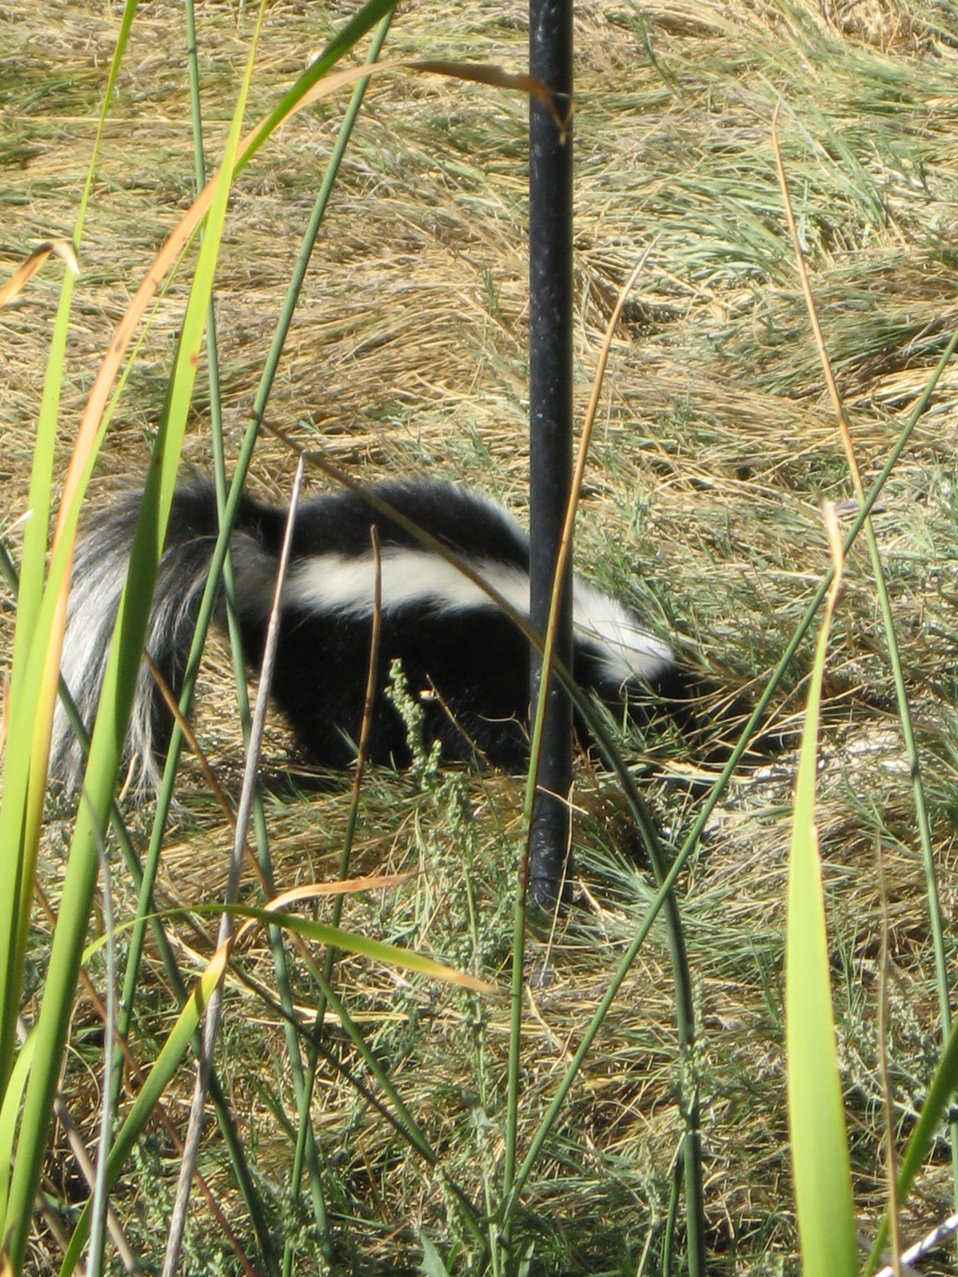 Skunk at the Bird Feeder